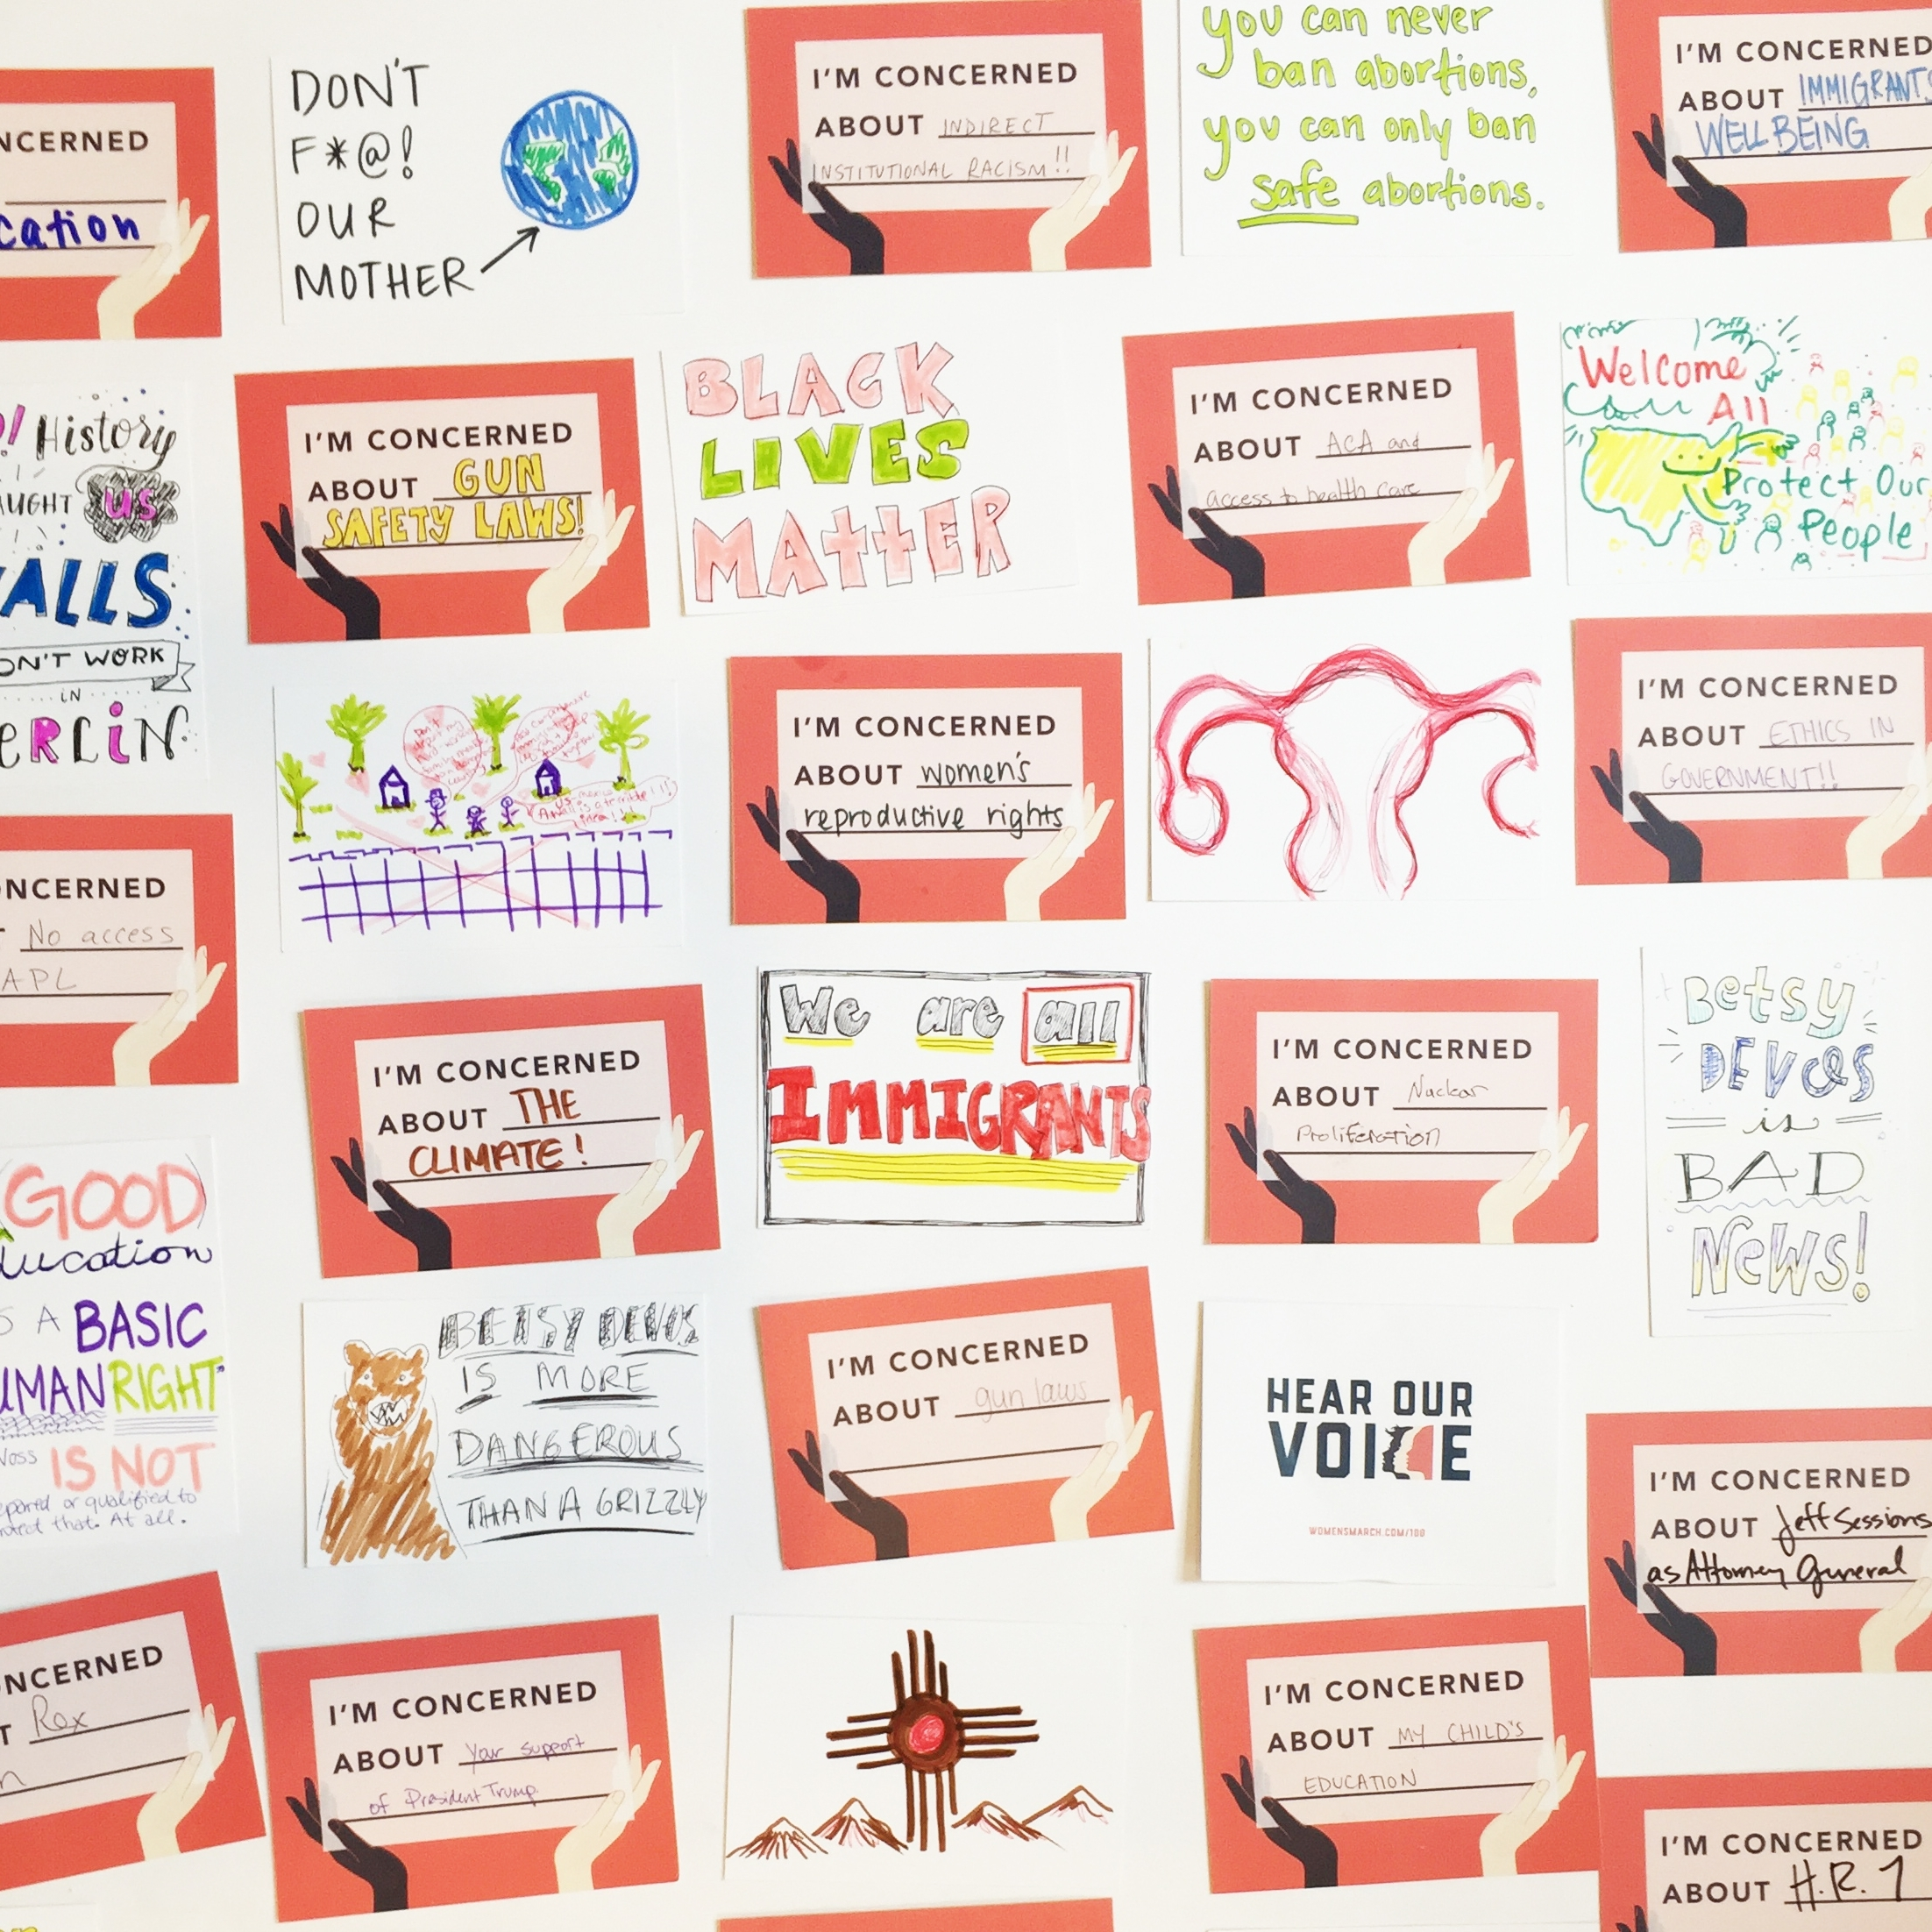 Photo of postcards from event